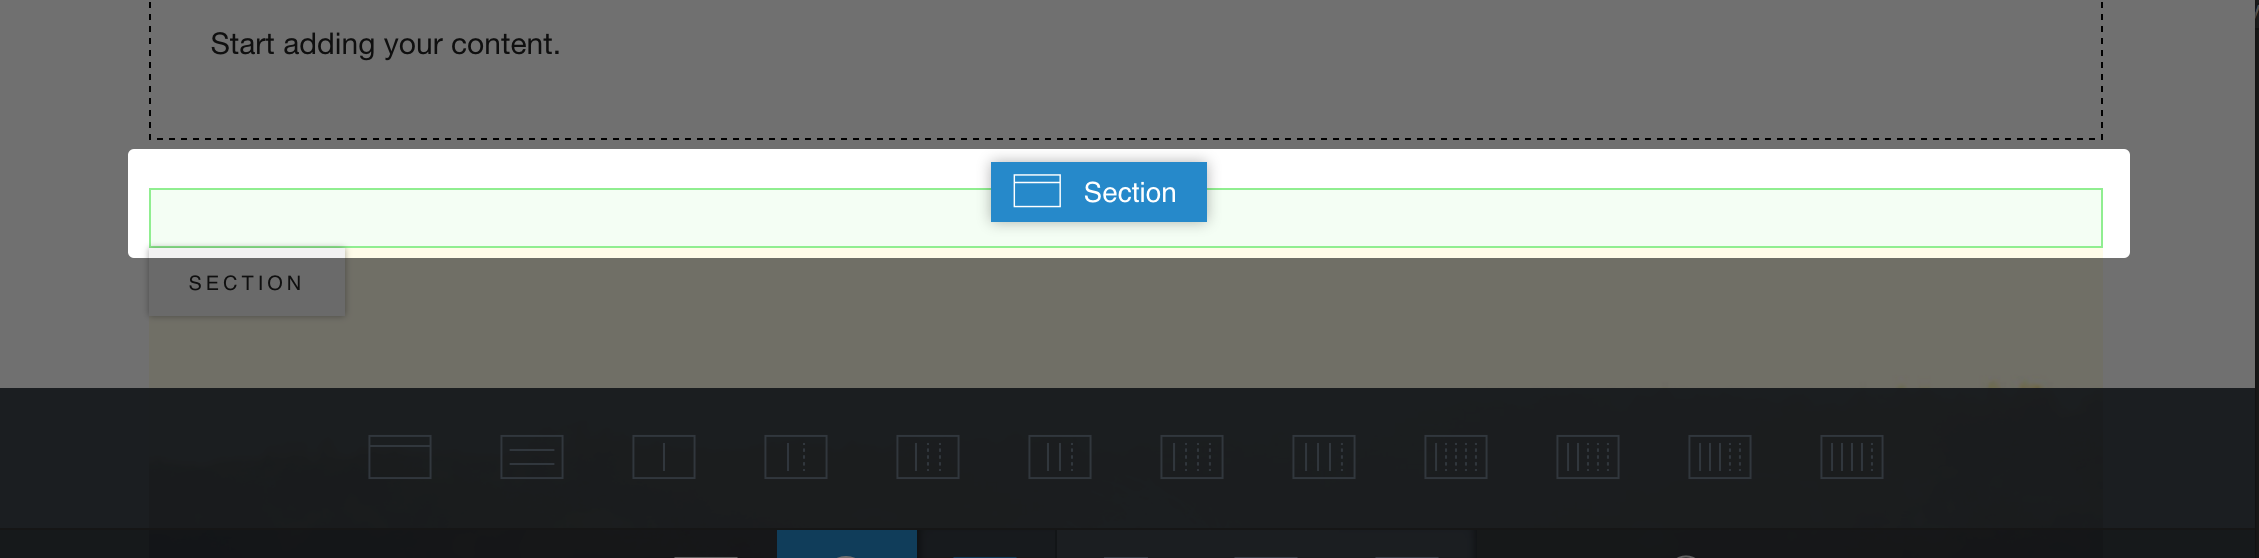 section-placeholder